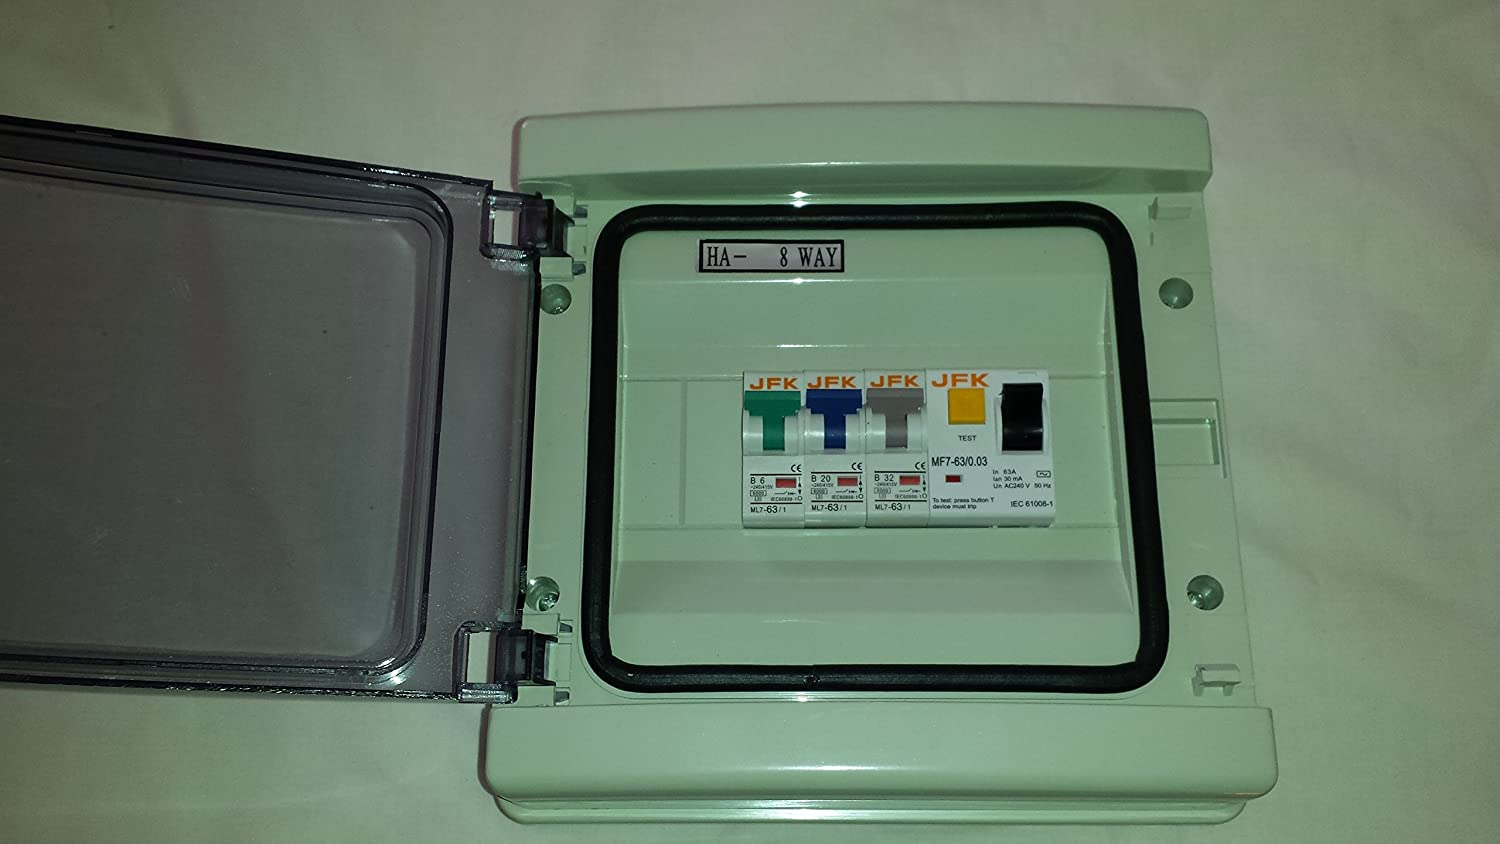 32 Amp Fuse Box Electrical Wiring Diagrams 15 3 Way Garageshed Consumer Unit Box63a Isolation Switch And